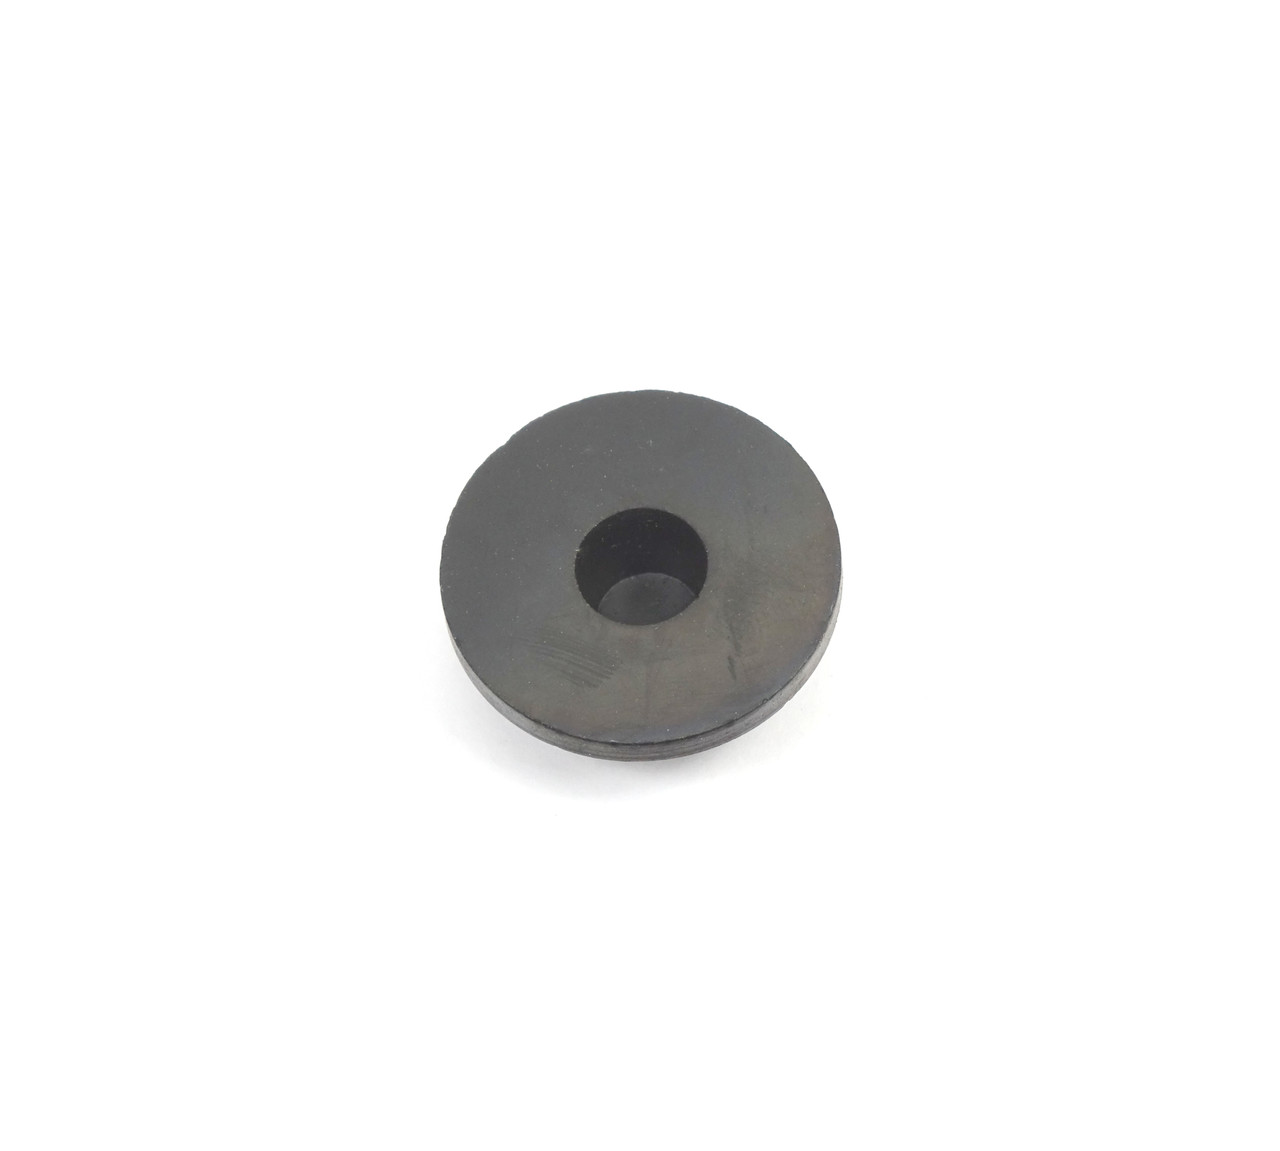 Rubber Drain Plug - Small